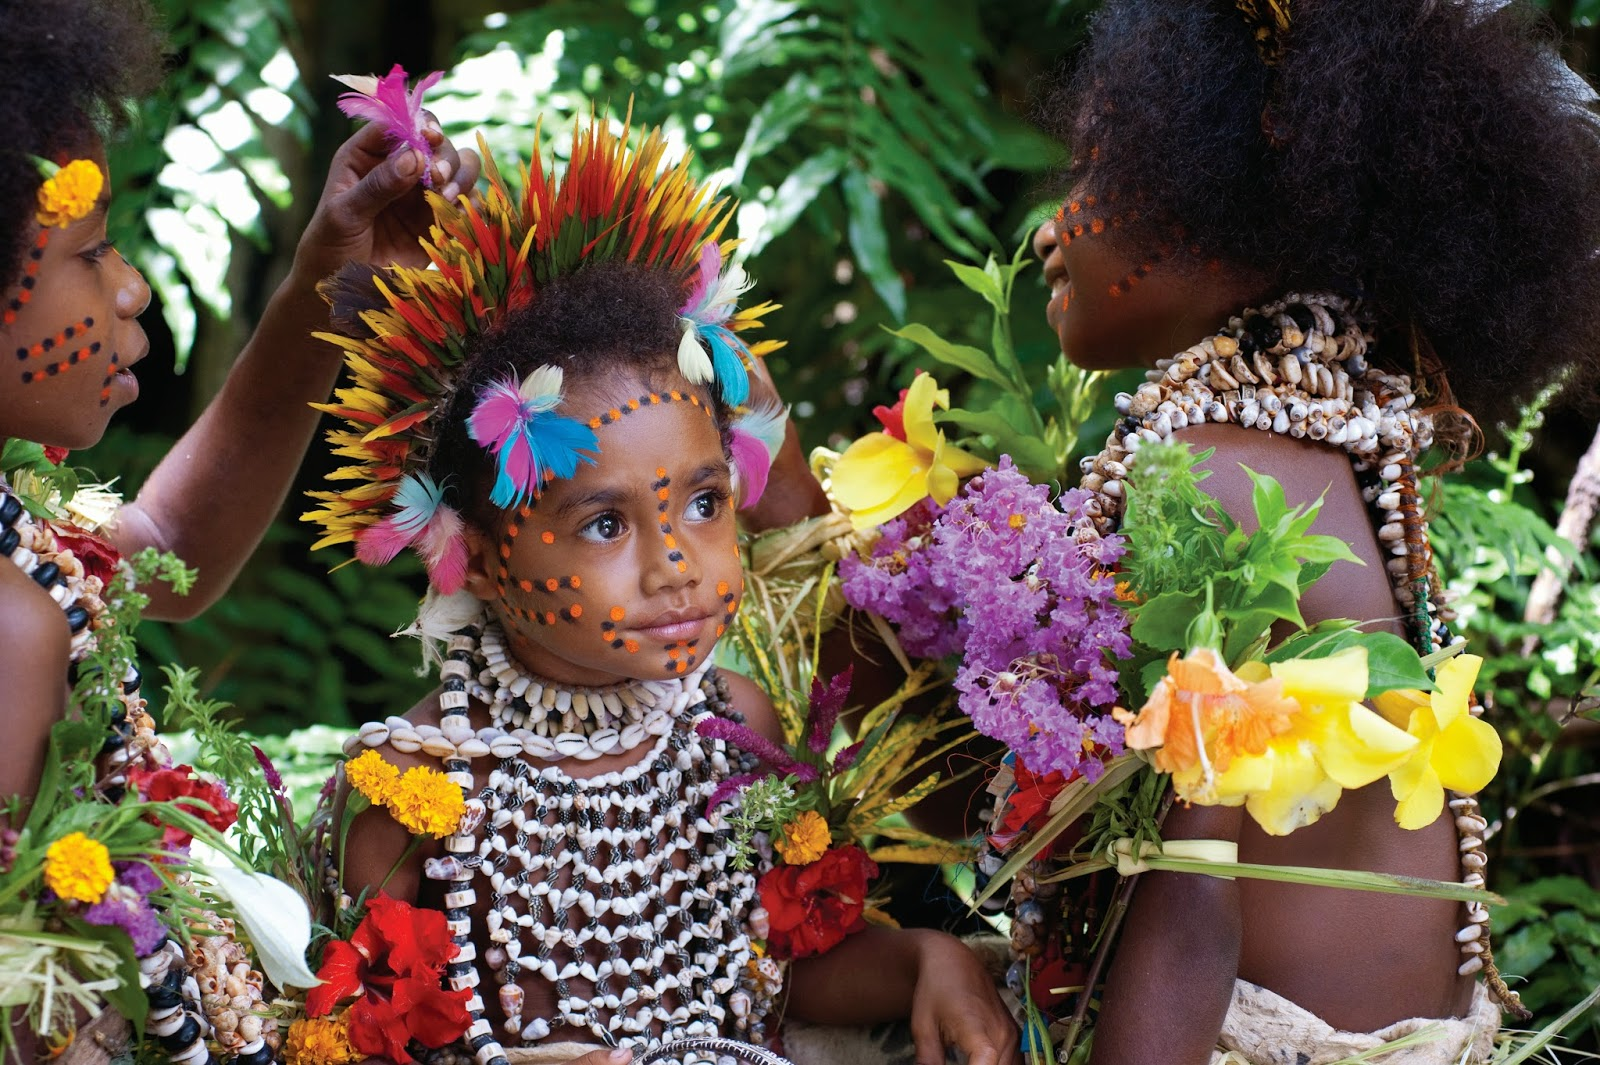 A COLOURFUL YOUNG TUFI GIRL - Papua New Guinea